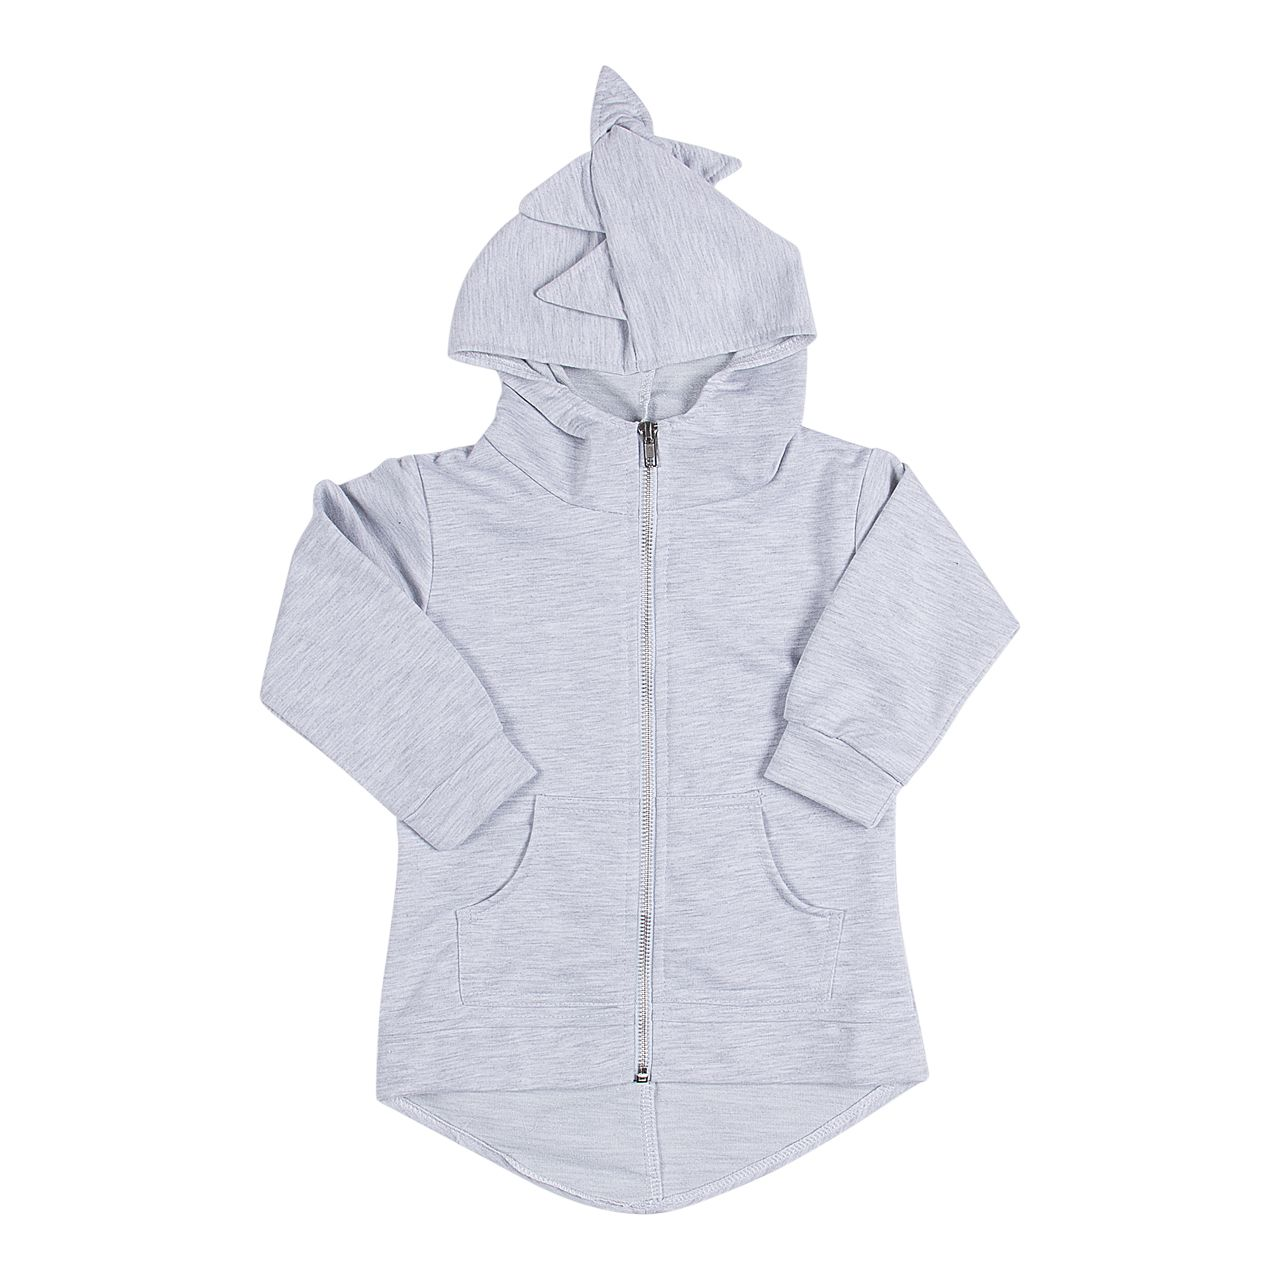 exquisite design great prices a few days away 2017 Baby Kids Dinosaur Coat Boys Toddlers Hoodies Tracksuit ...